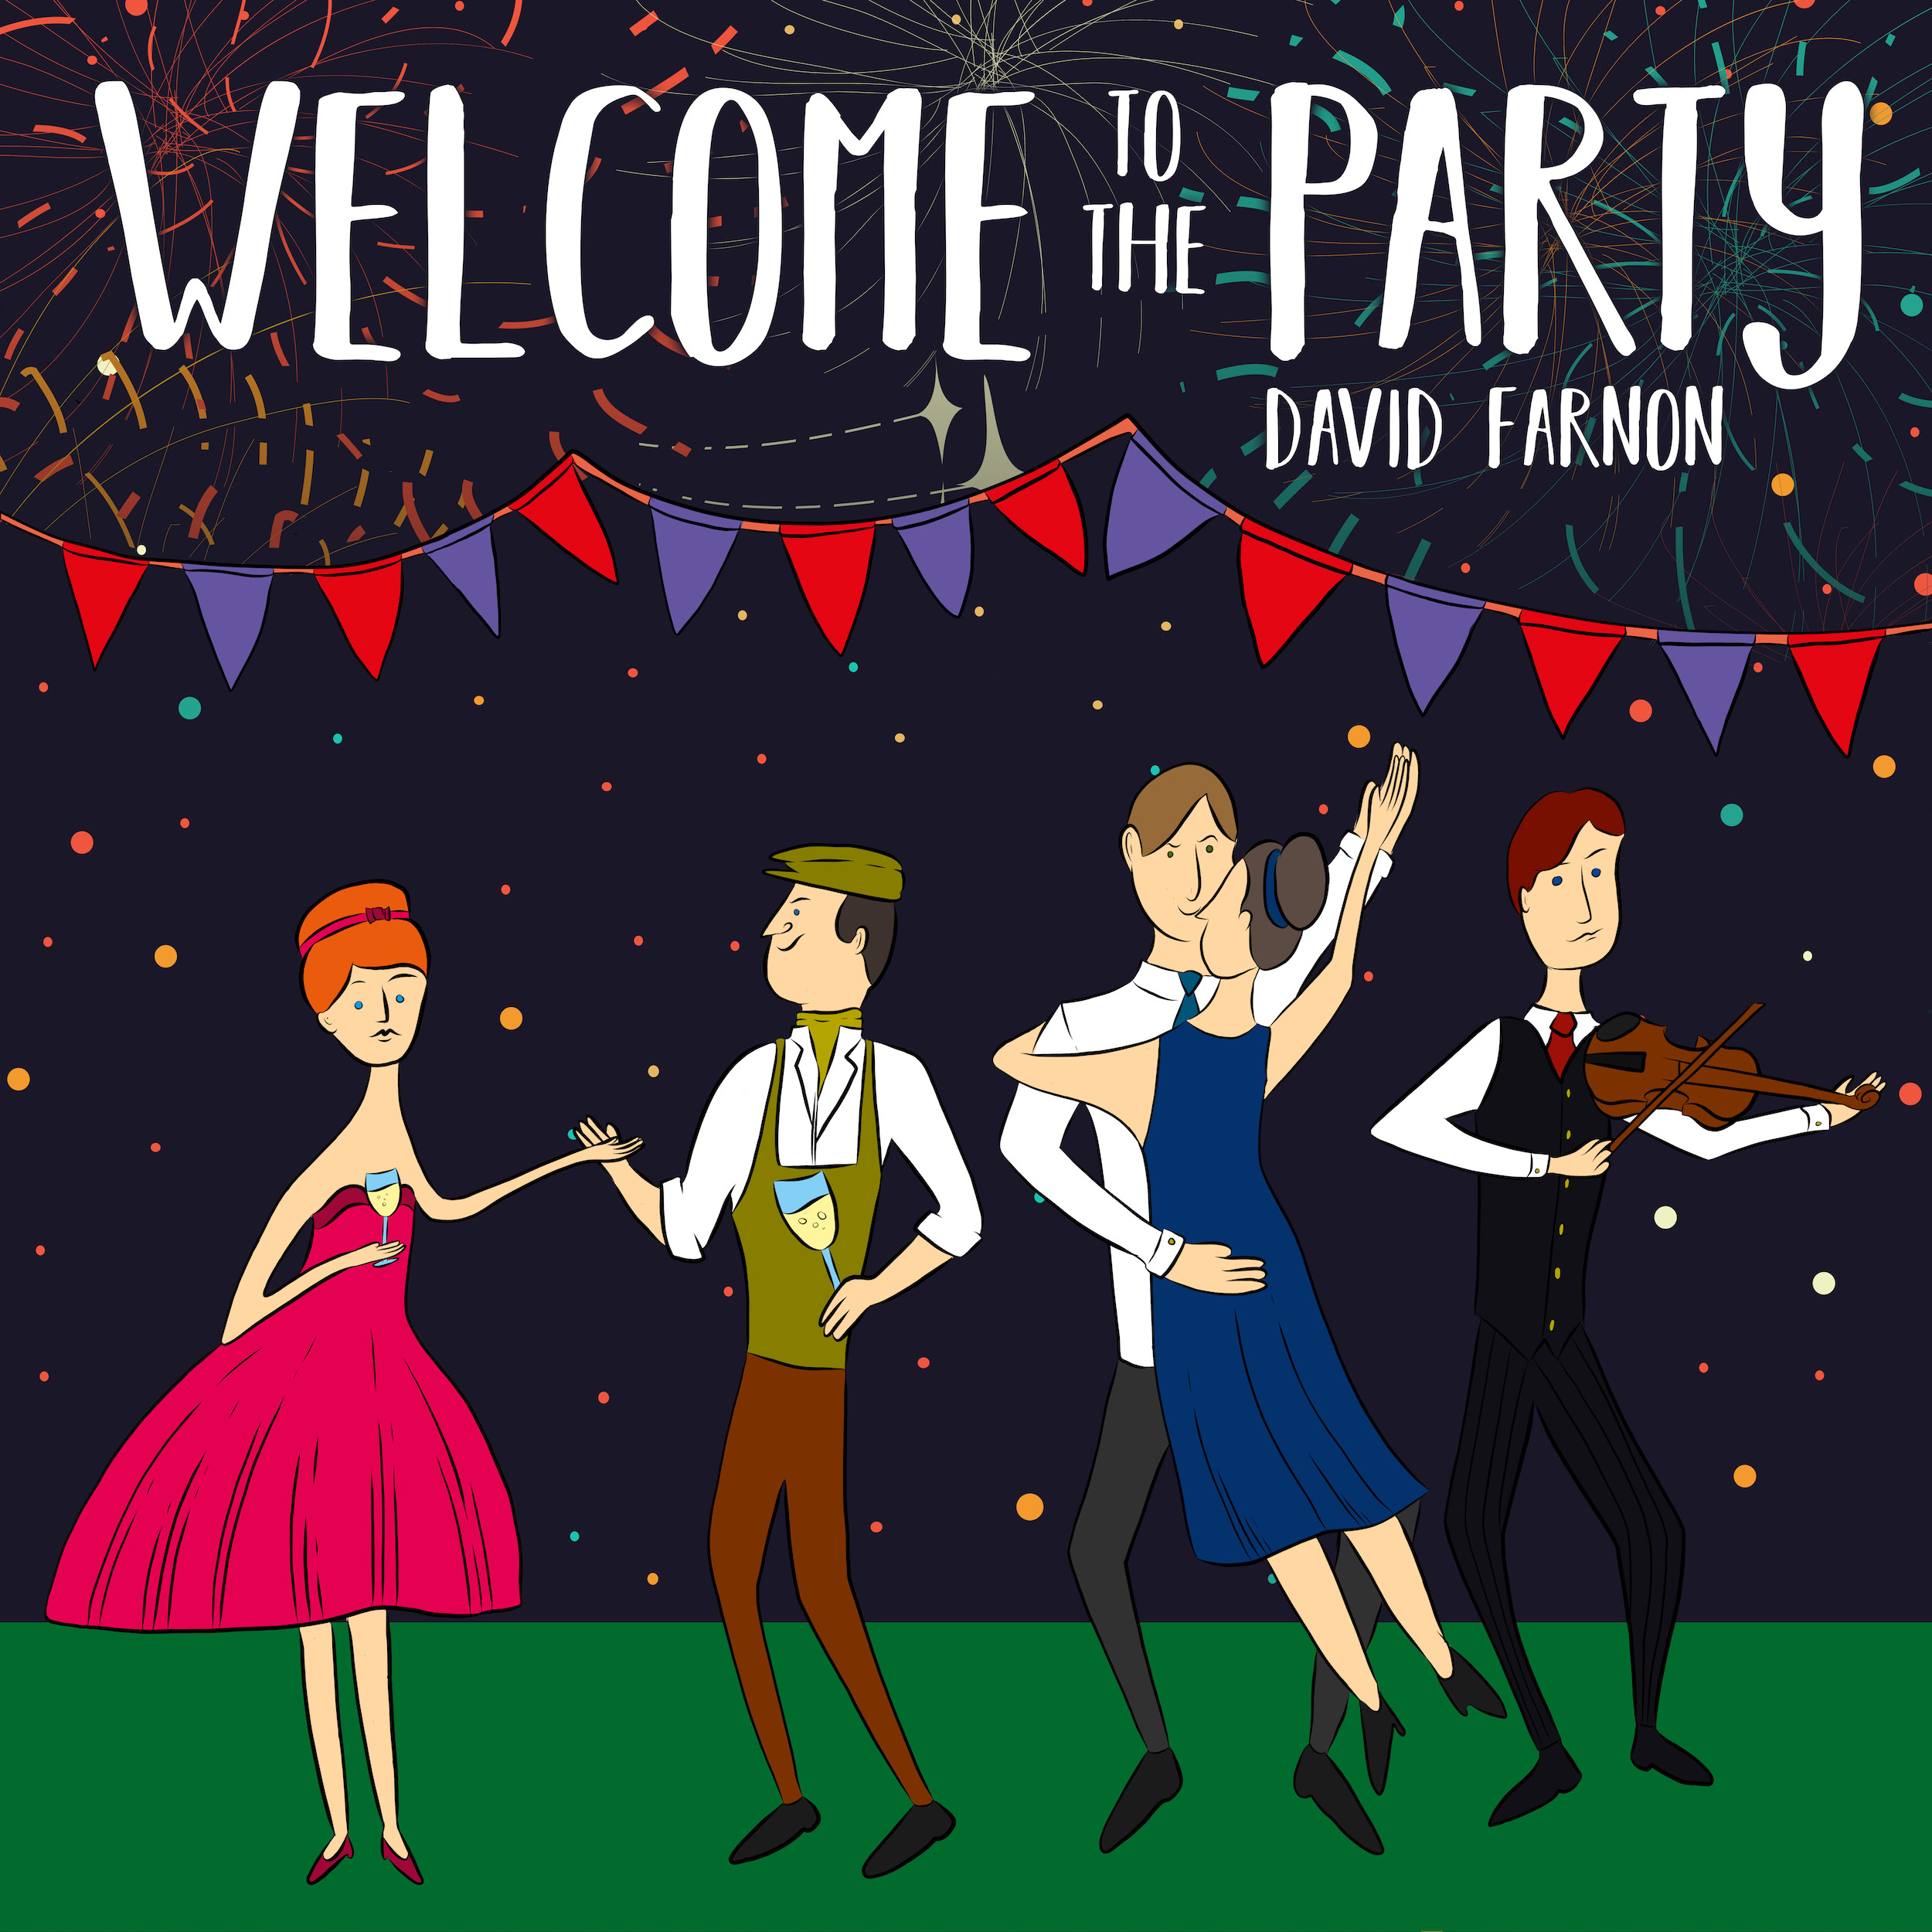 Welcome To The Party | David Farnon (2018) -